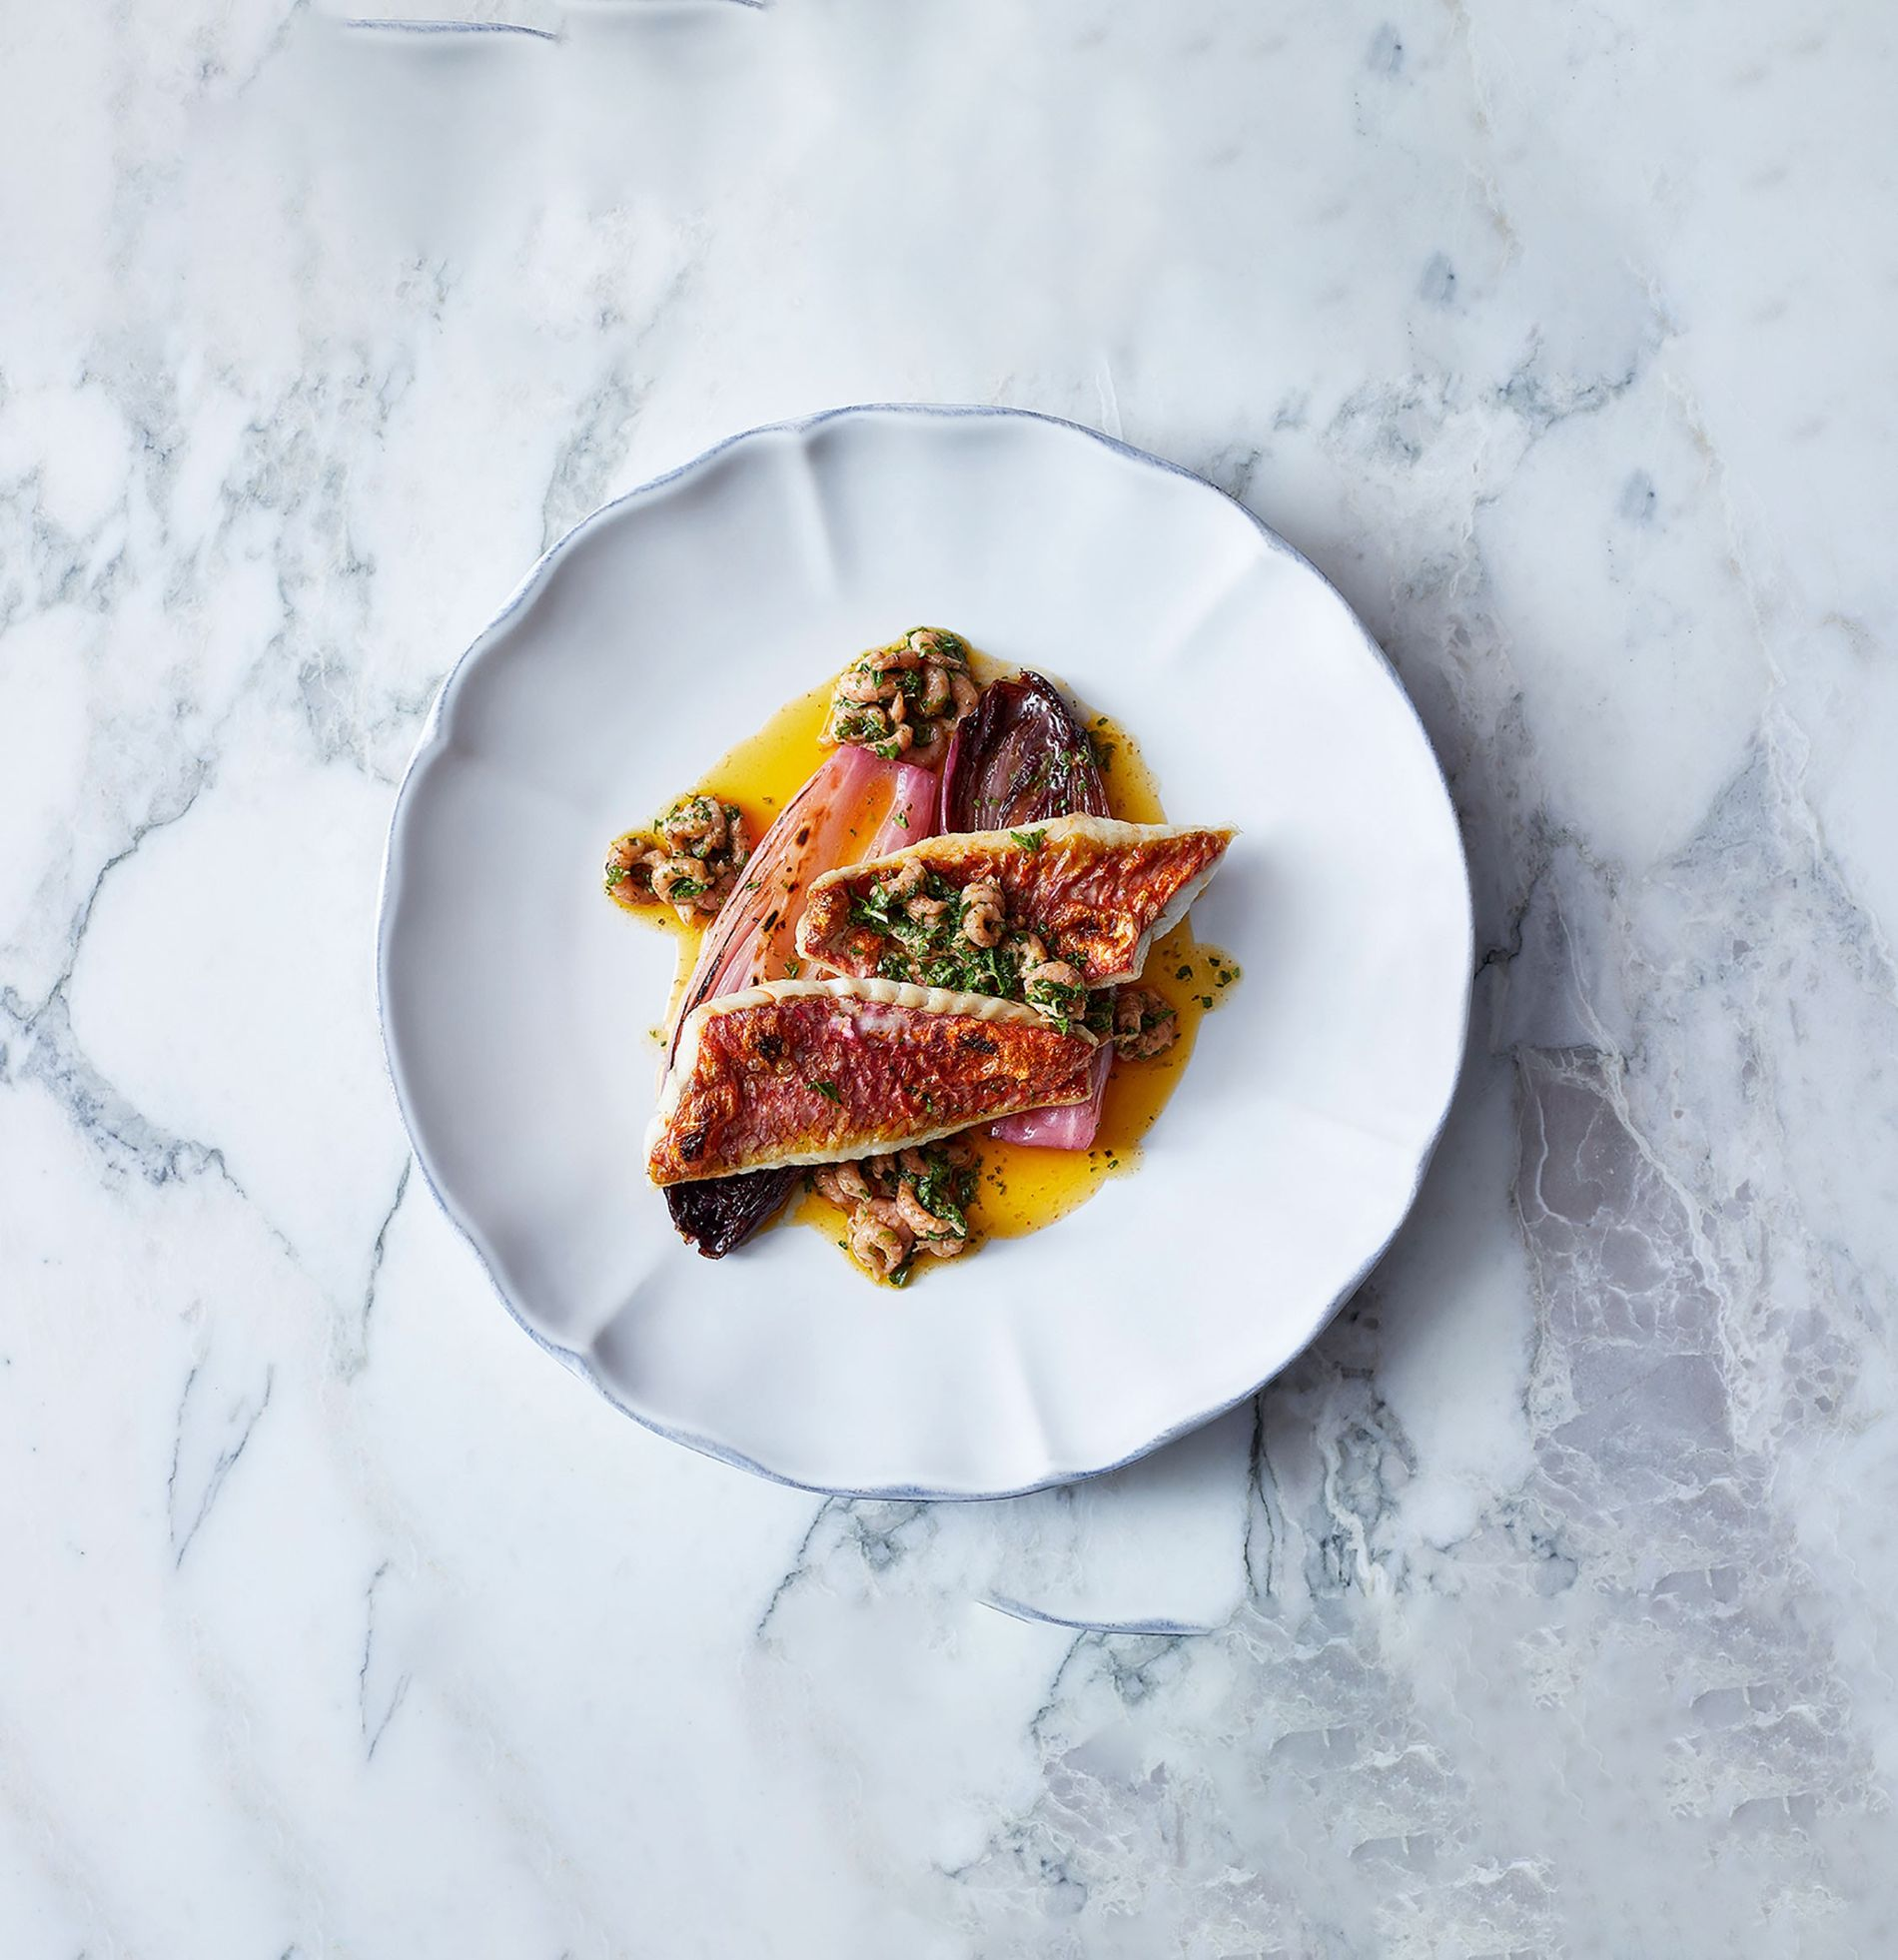 Siren's red mullet in a Champagne sauce.